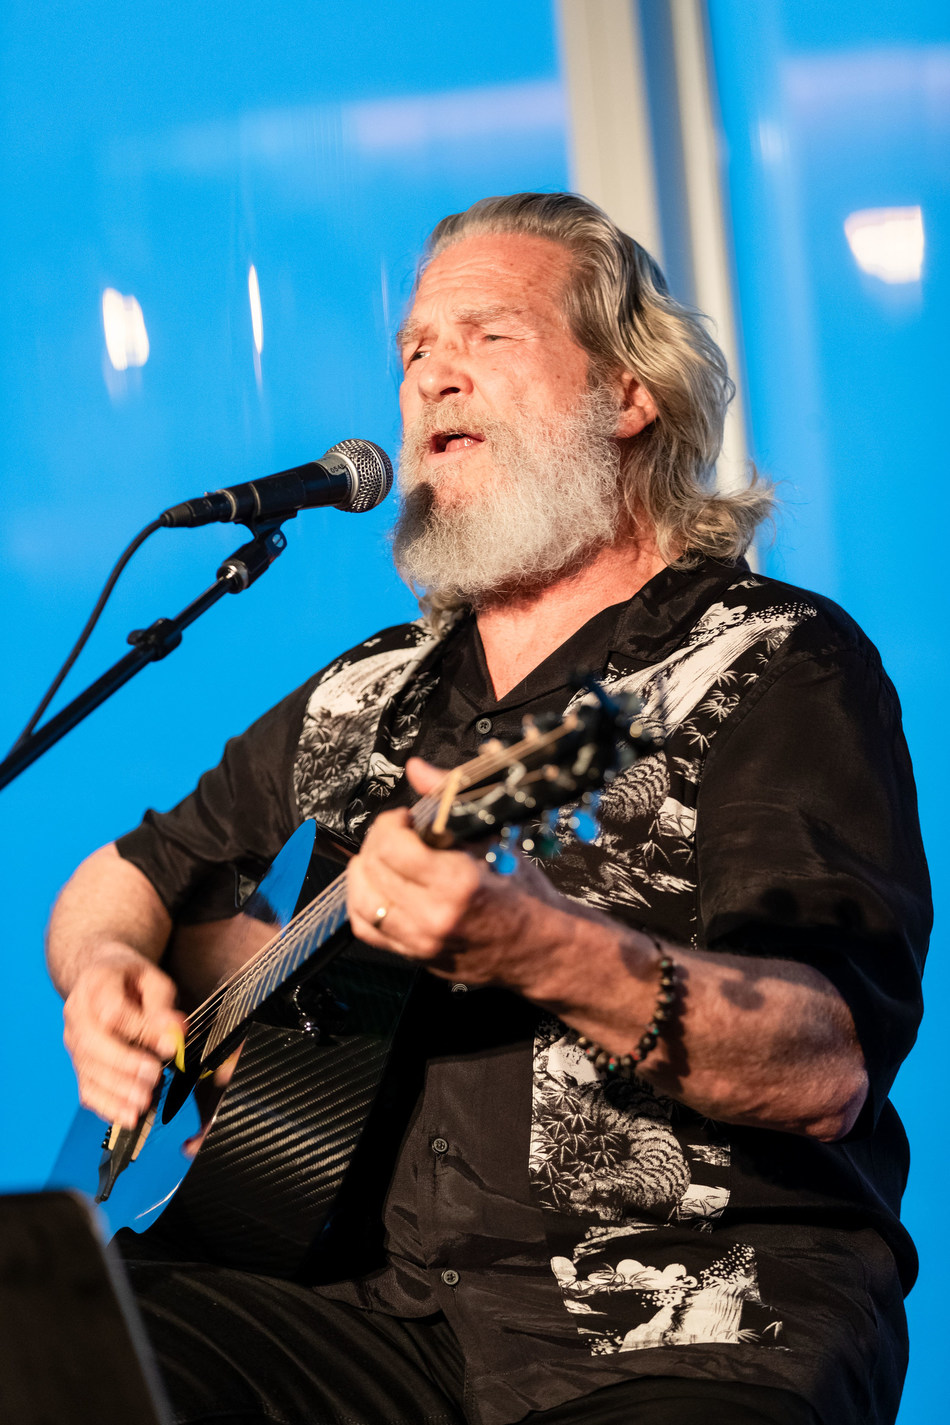 Jeff Bridges performing at Bay Area Lyme Foundation's LymeAid 2019. Bridges highlighted the challenges of a Lyme disease diagnosis that his friend Kris Kristofferson and many others have faced.